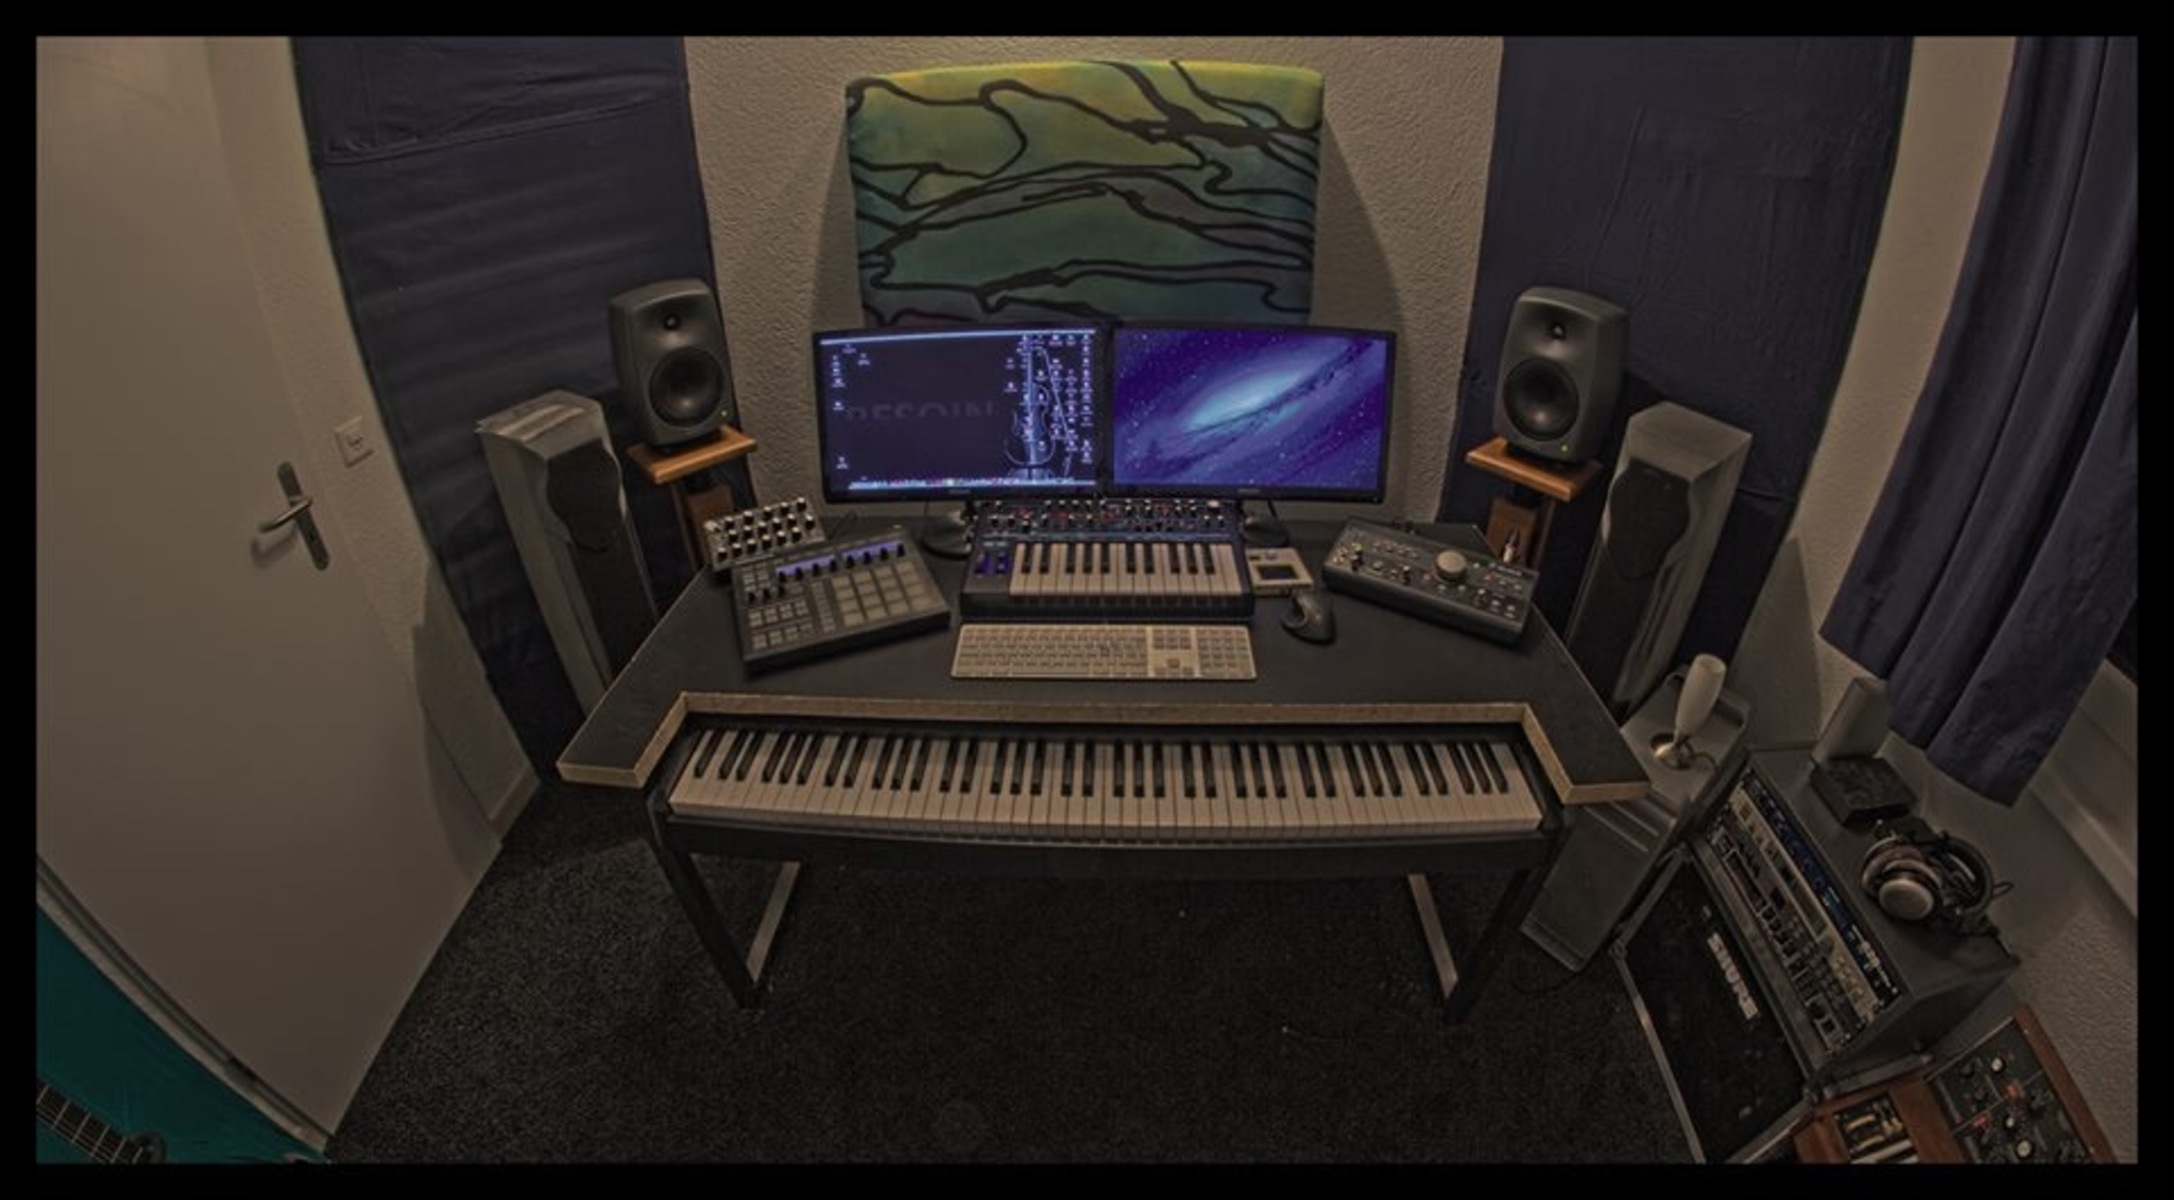 Photo of Akai Professional MPK88 Keyboard and USB MIDI Controller and more gear